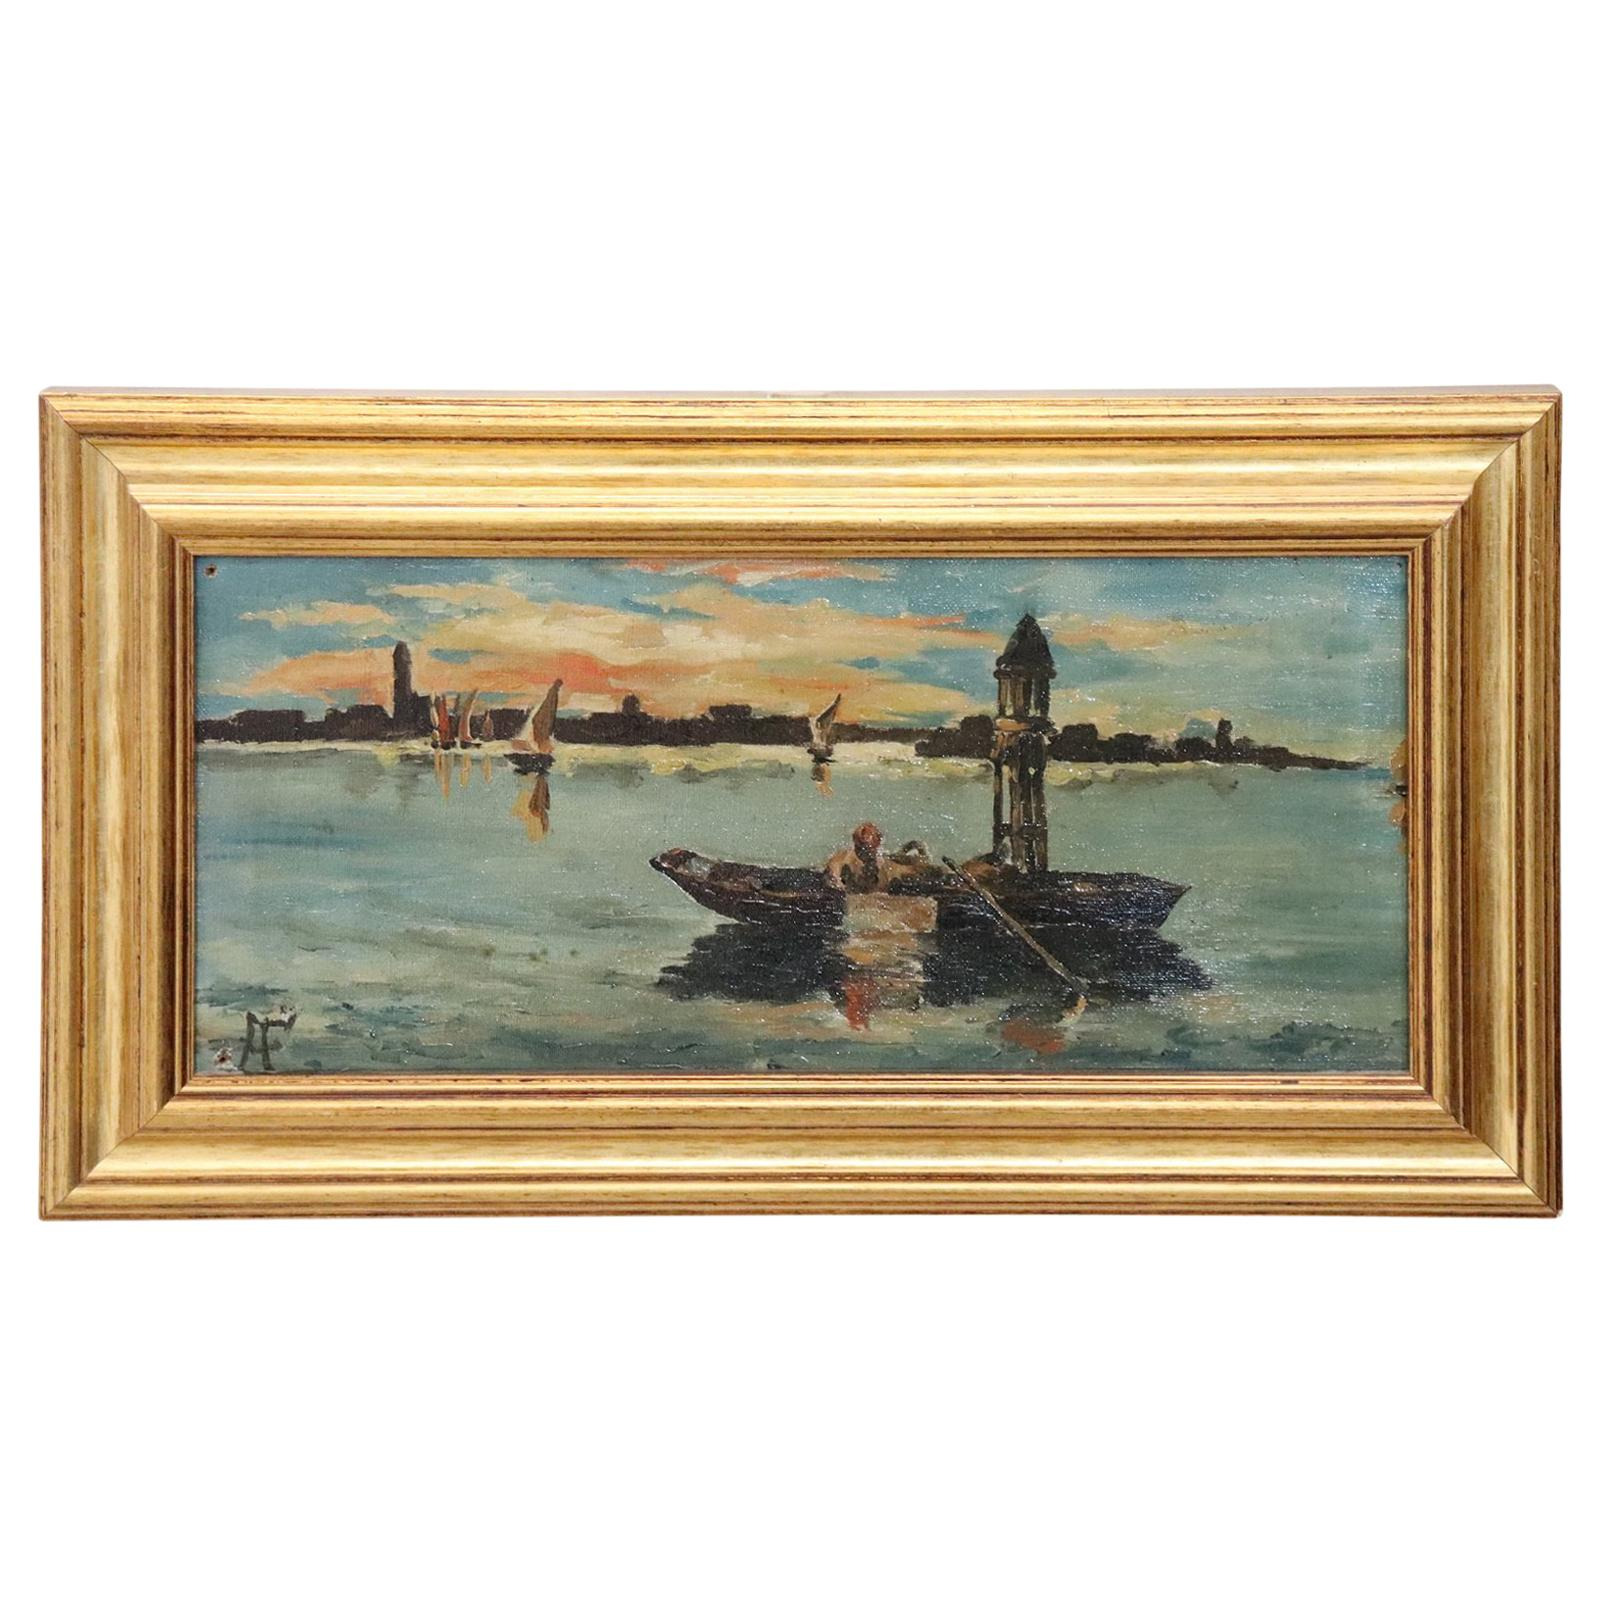 20th Century Venice Oil Painting on Canvas with Golden Frame